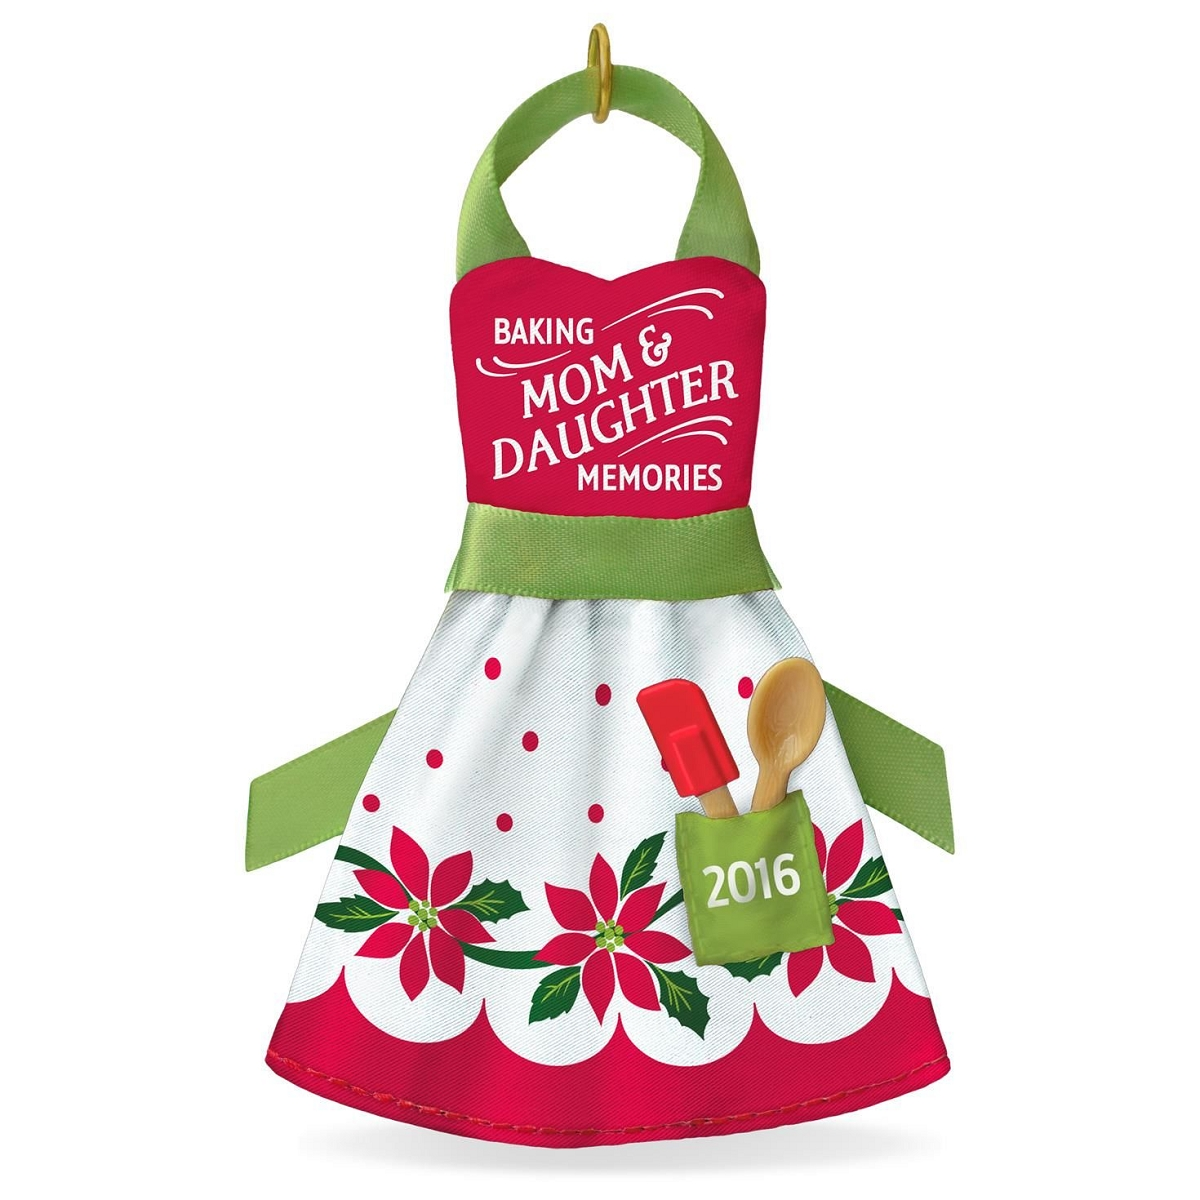 2016 Baking Mom and Daughter Memories Hallmark Keepsake ...